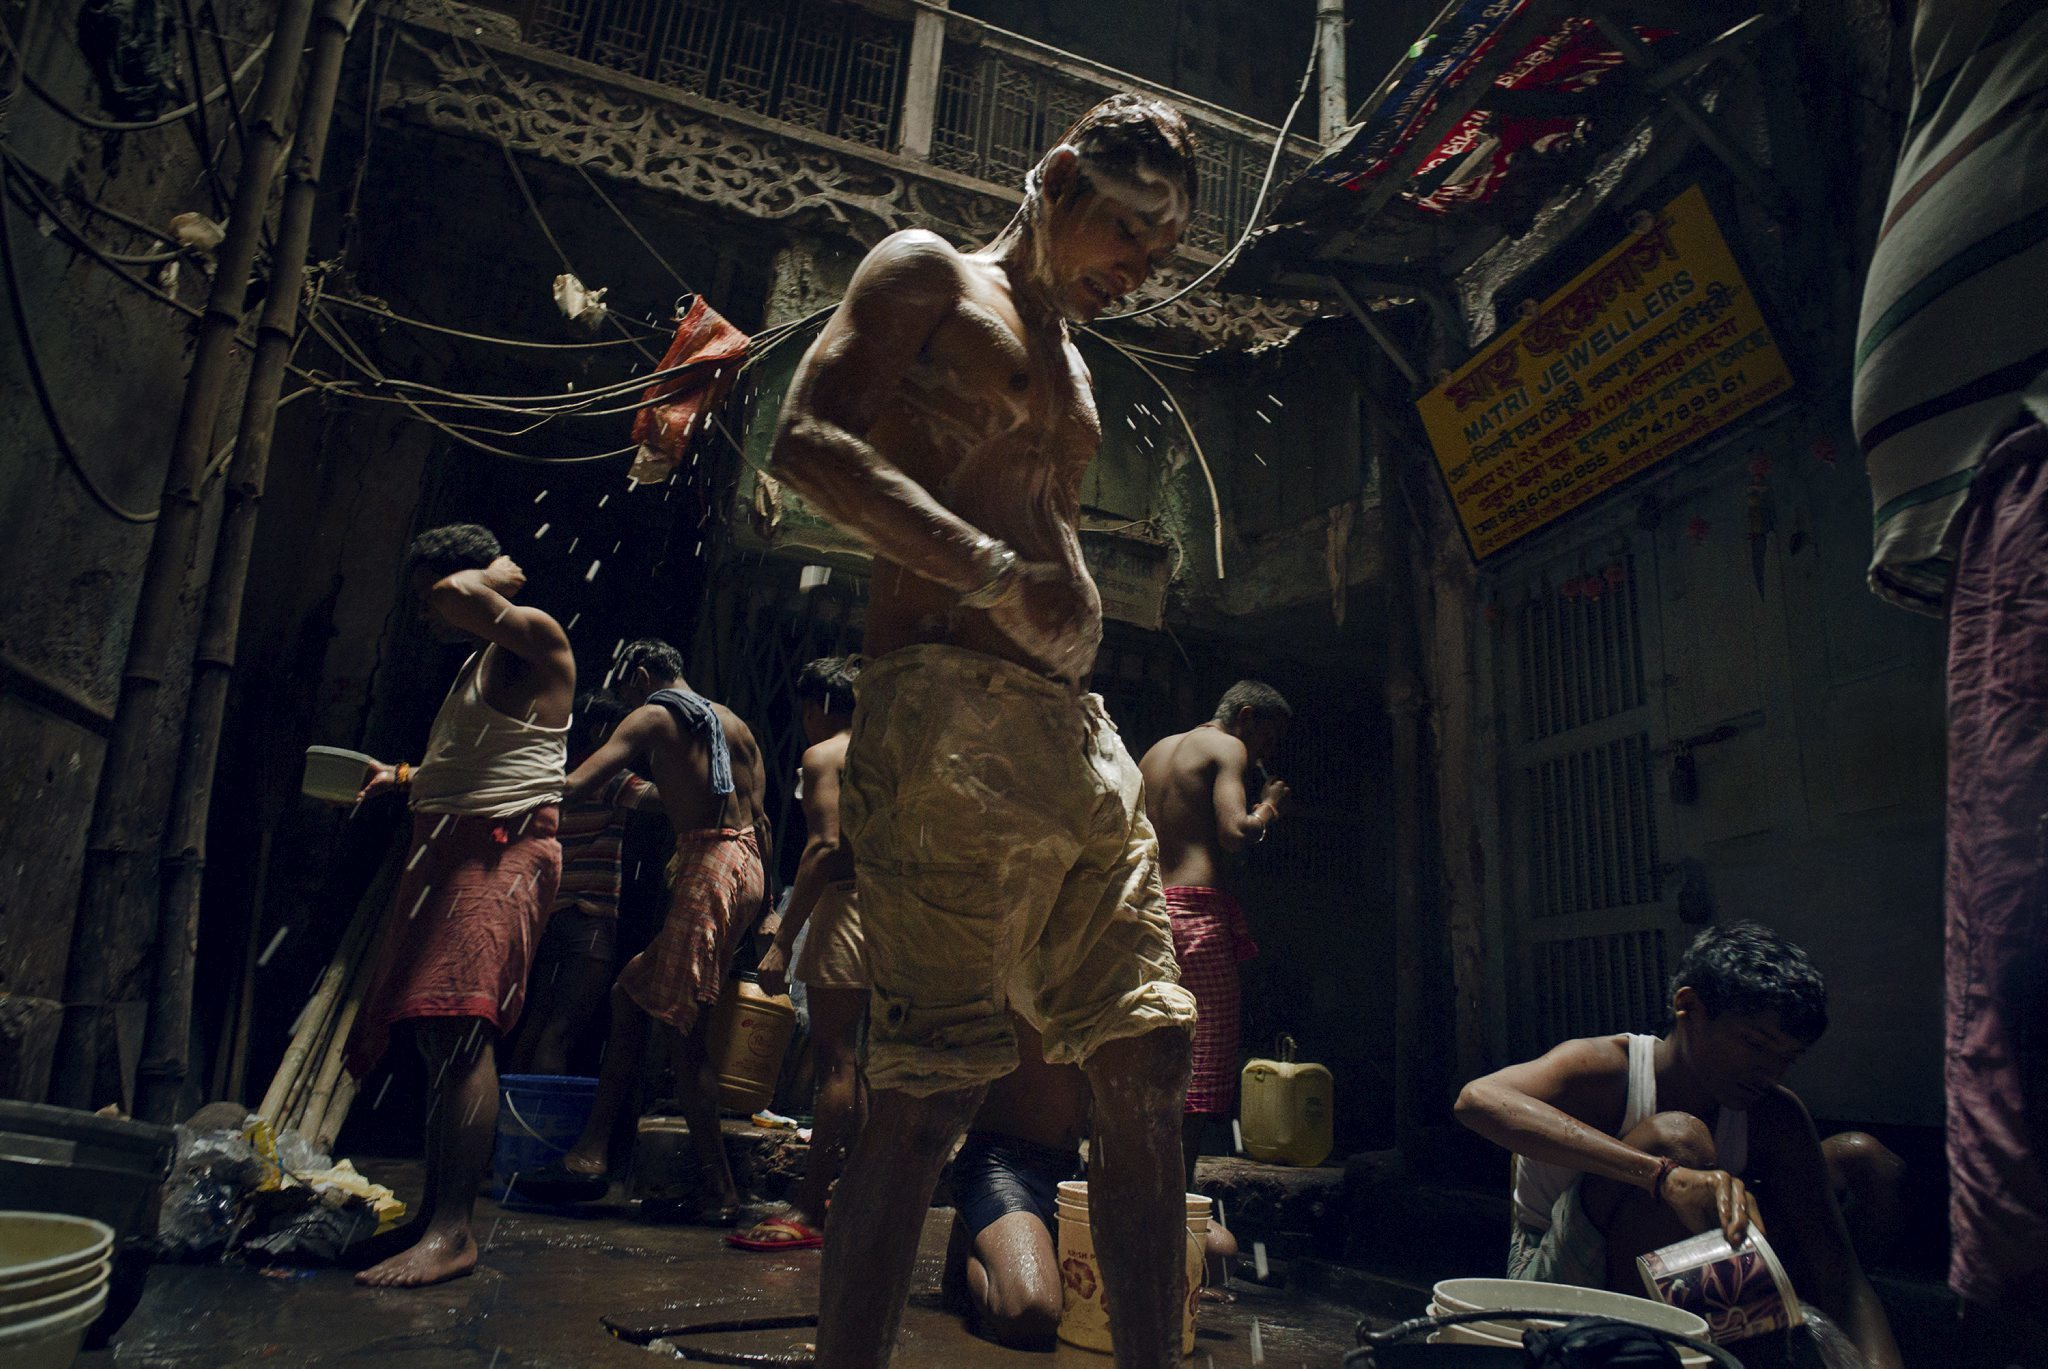 (© Nick Ng, Malaysia, Winner, Low light, Open Competition, 2015 Sony World Photography Awards)